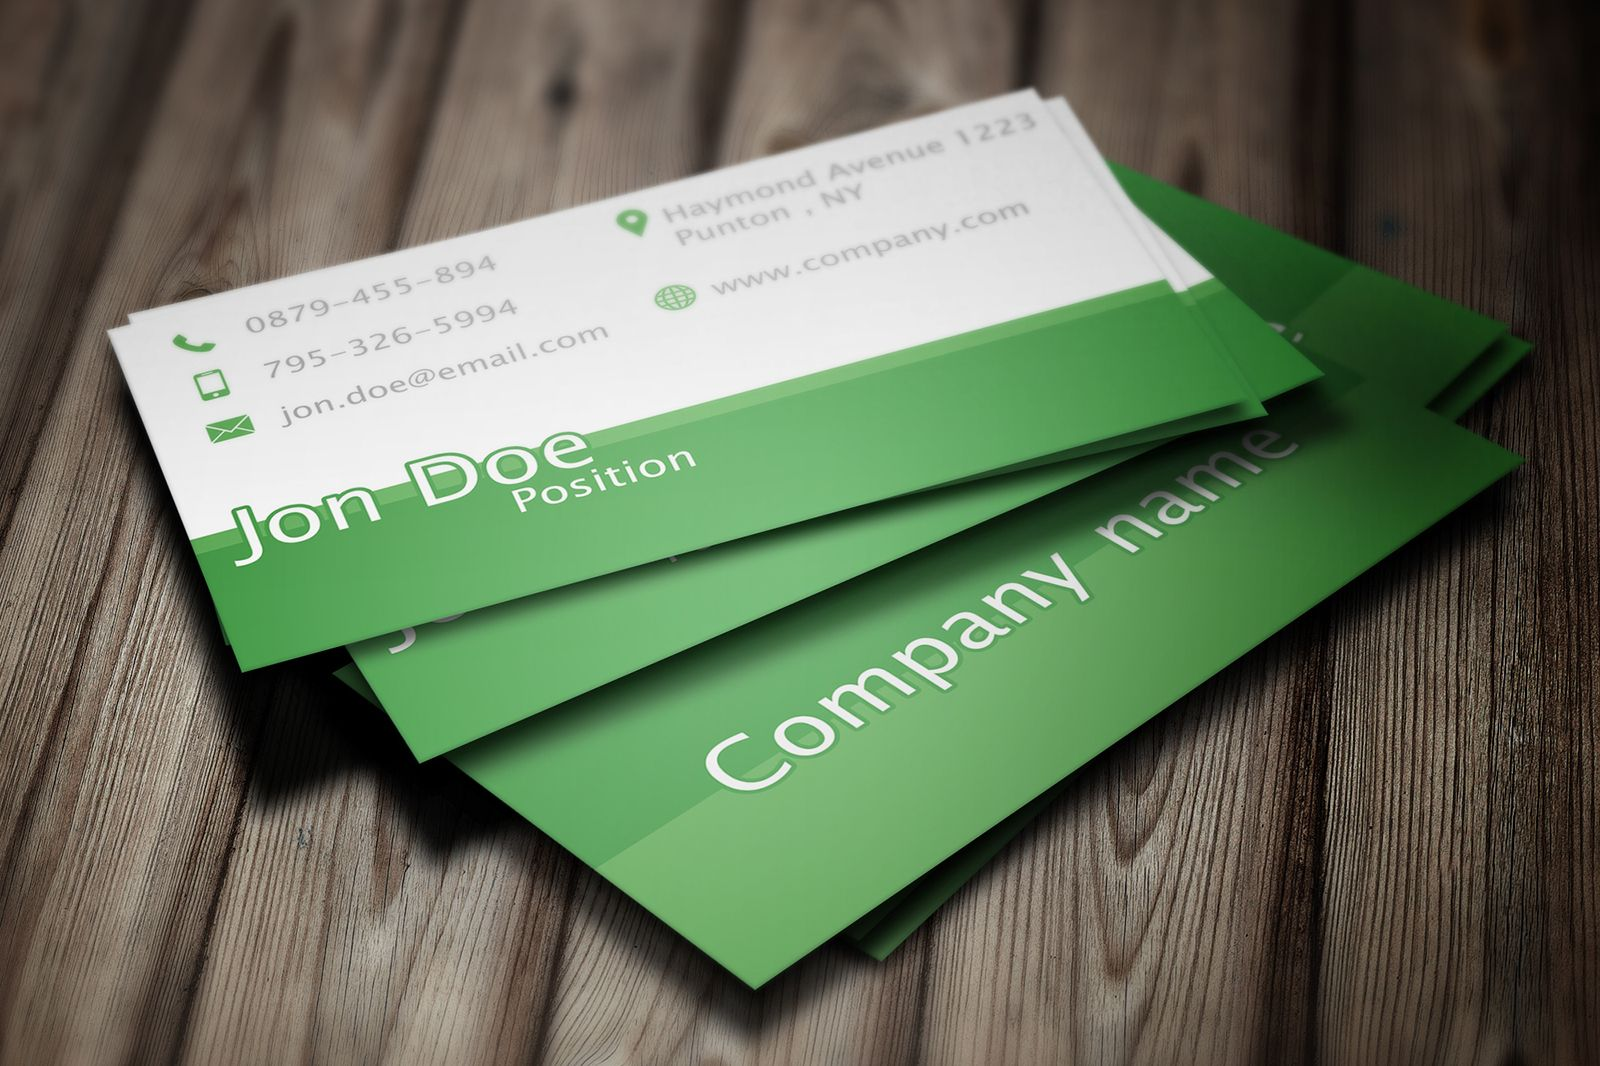 Stylish window cleaning business cards design available for free stylish window cleaning business cards design available for free download as adobe photoshop psd file free business cards templates pinterest alramifo Images